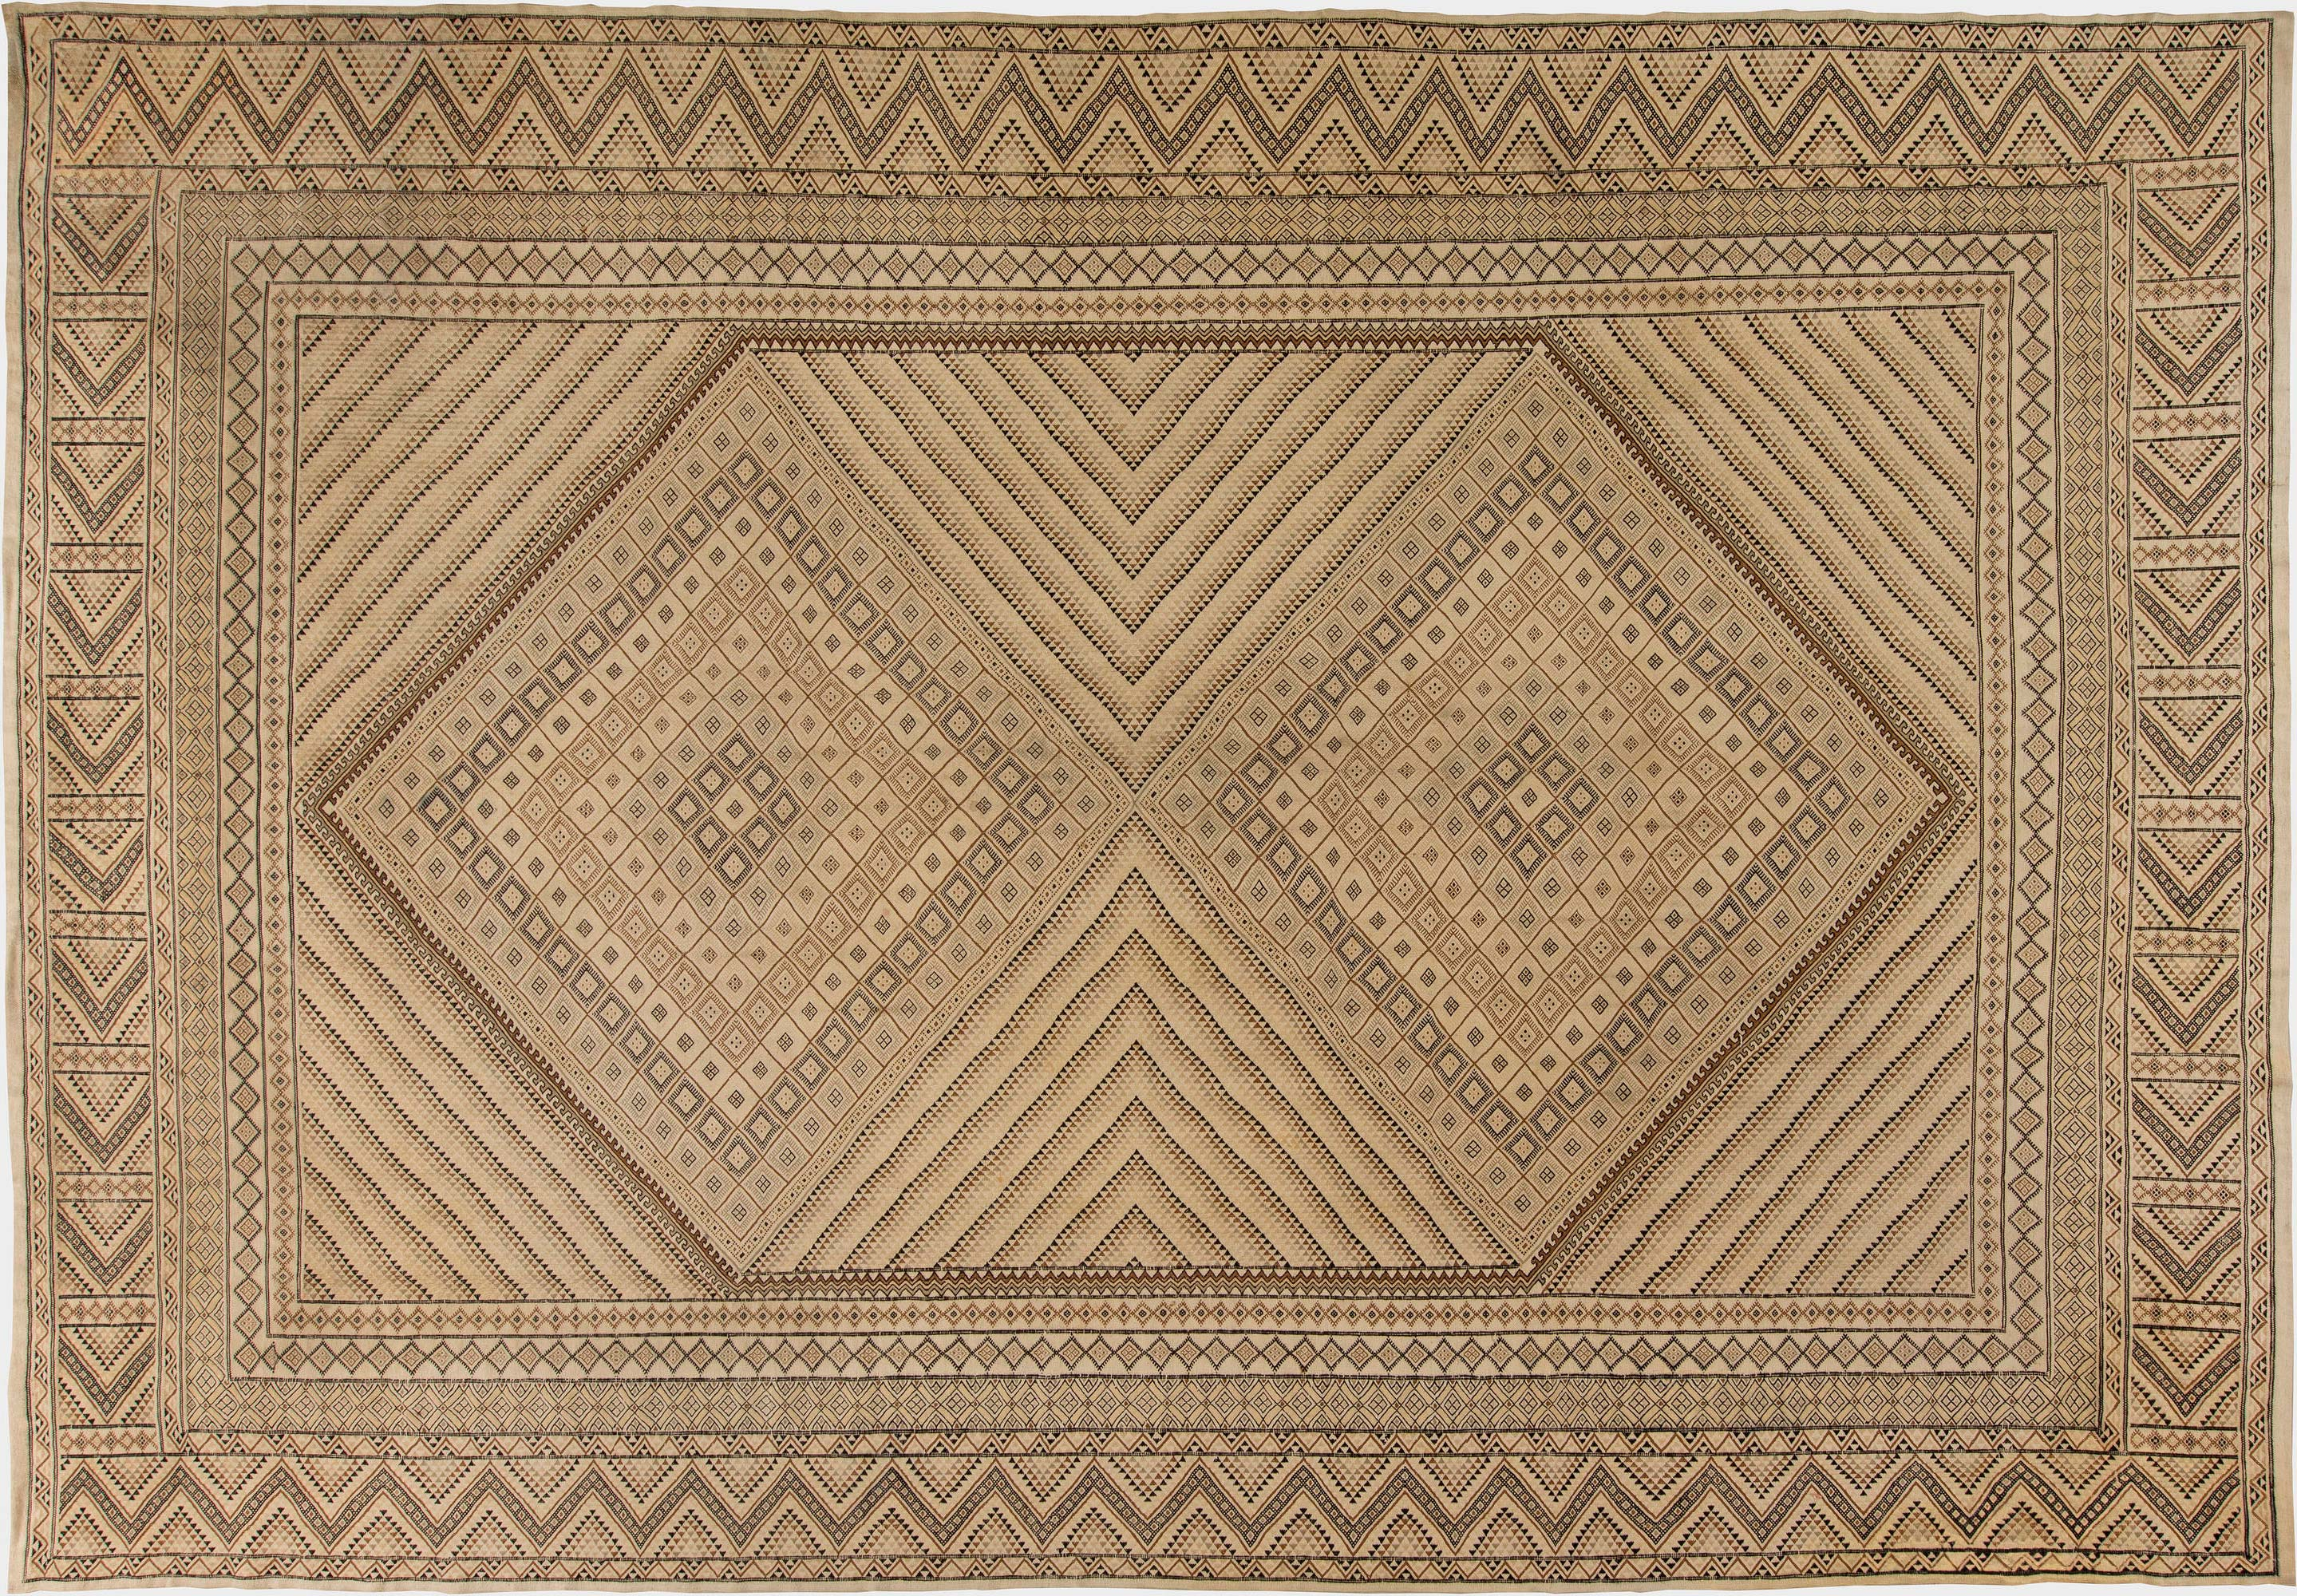 Hand Knotted Wool Kilim Rug